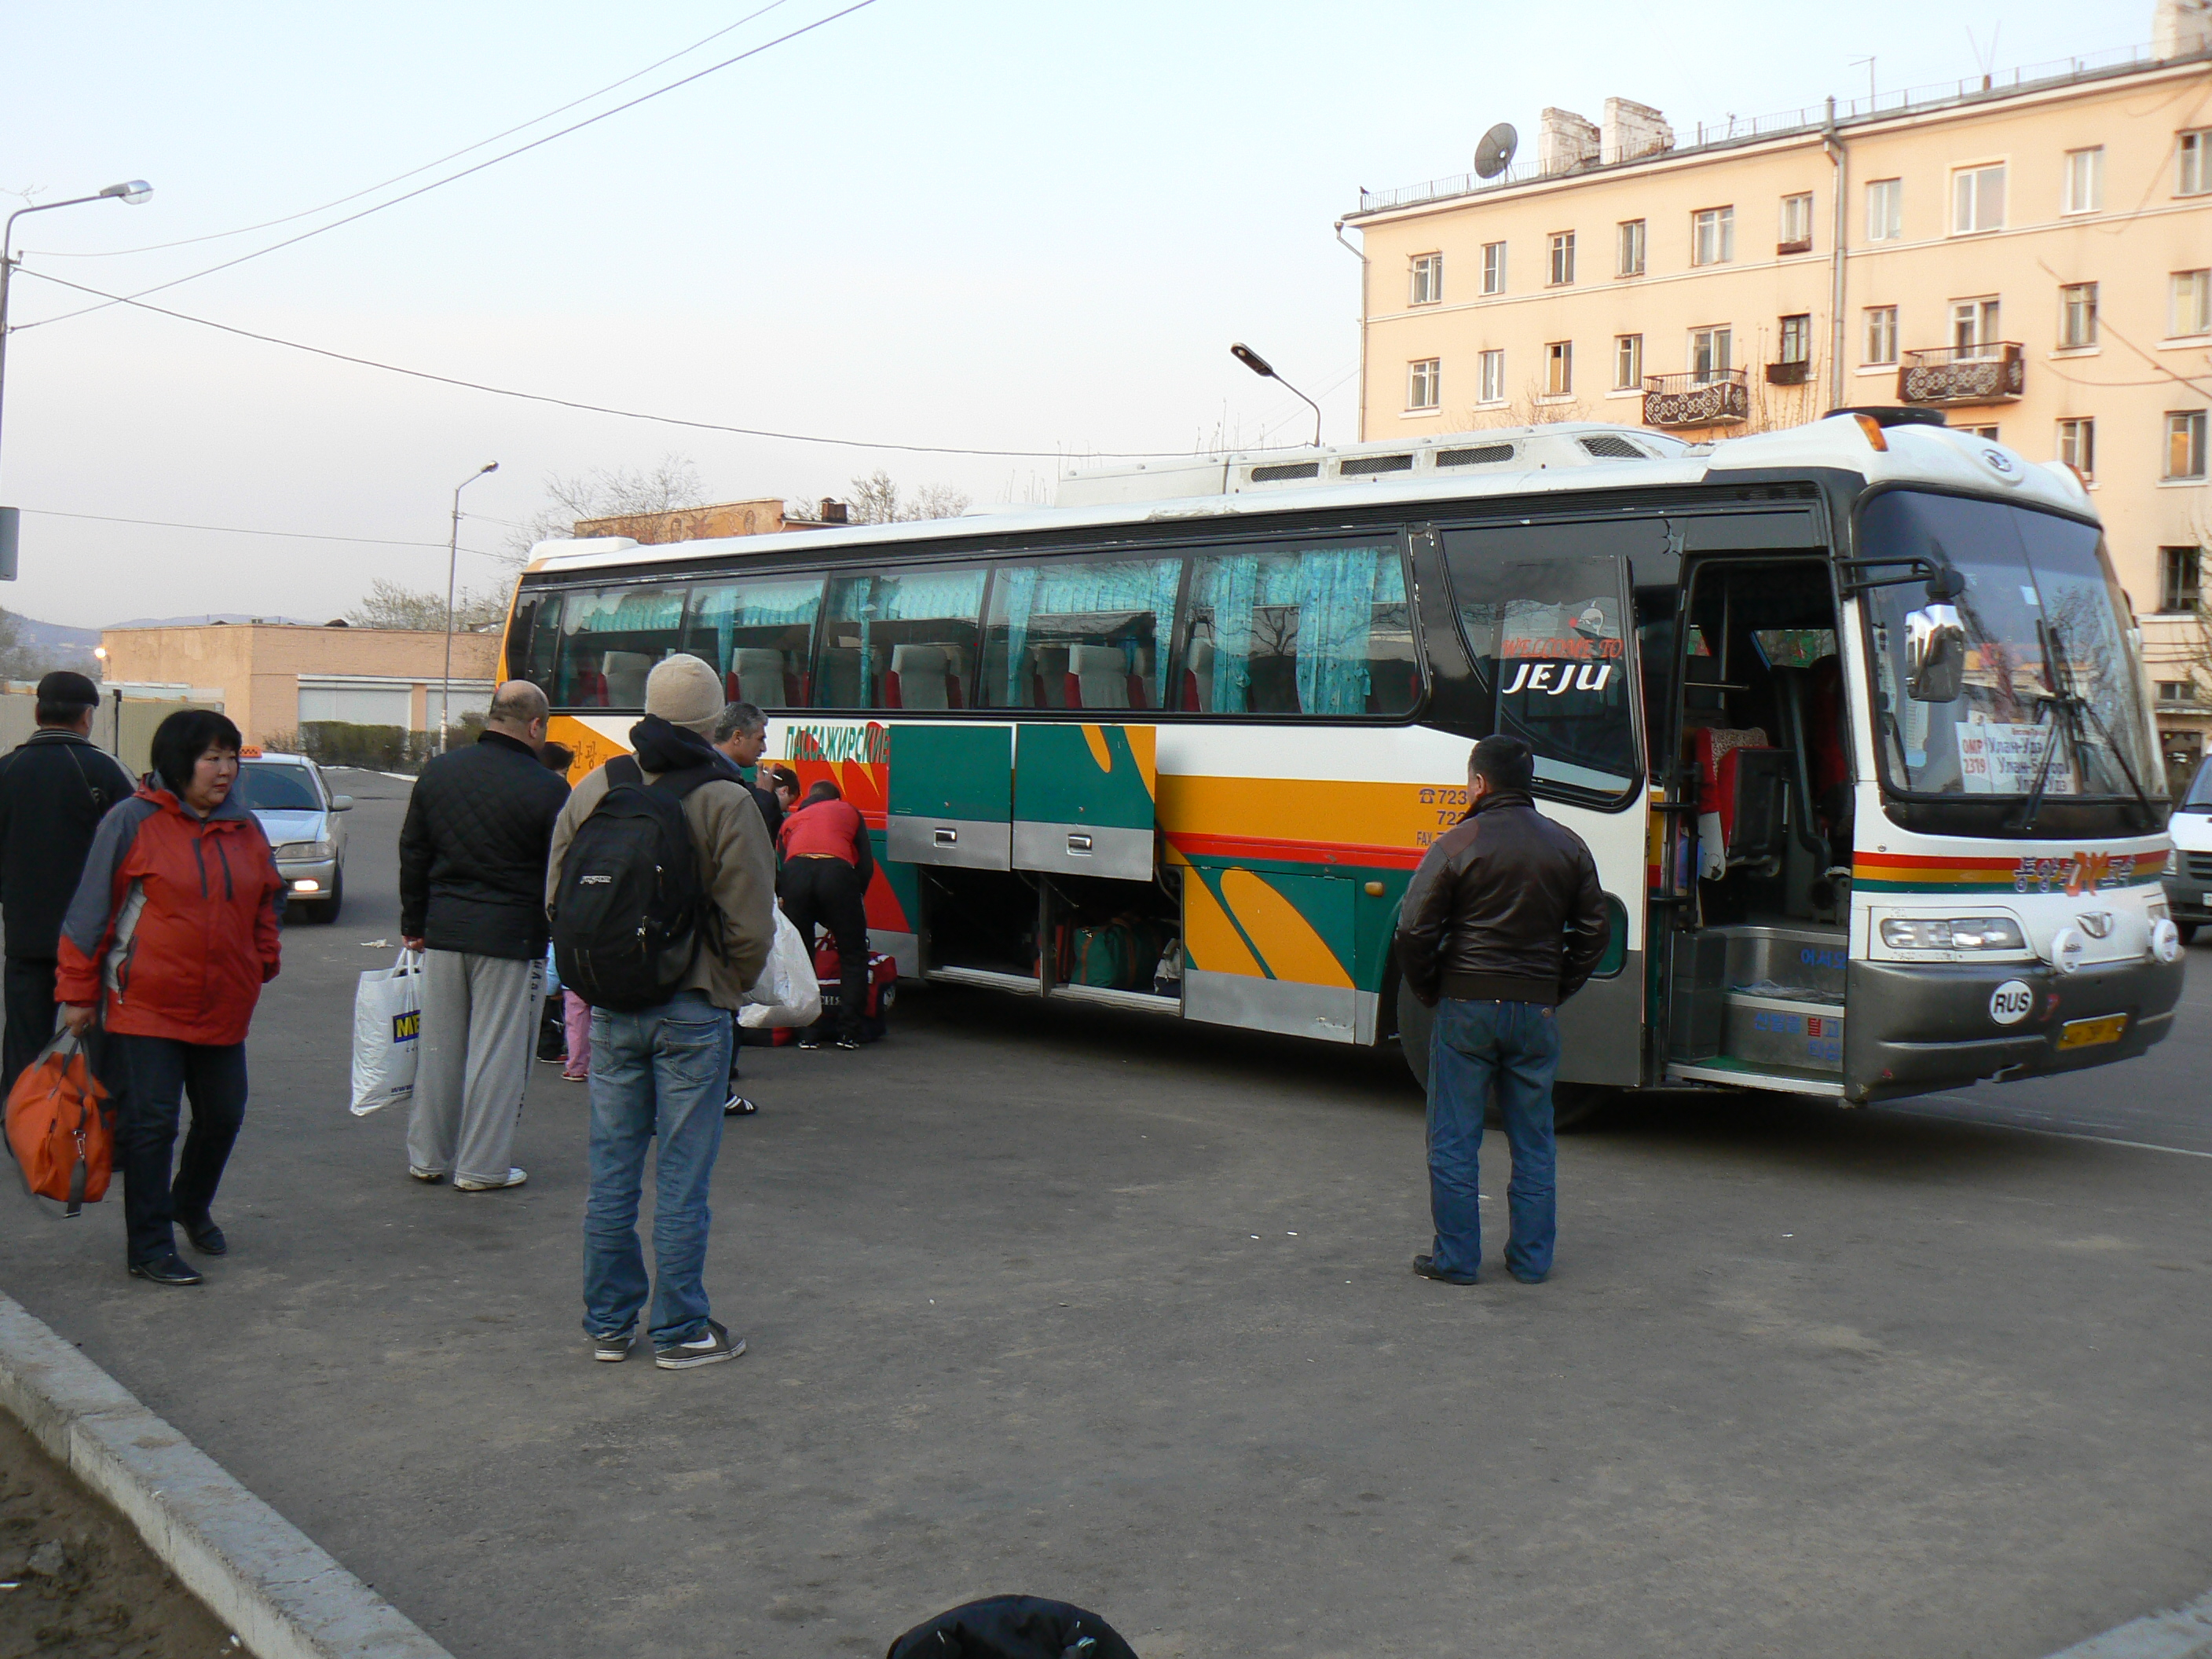 Bus Trip From Ulan Ude To Ulaanbaatar Moscow To Beijing